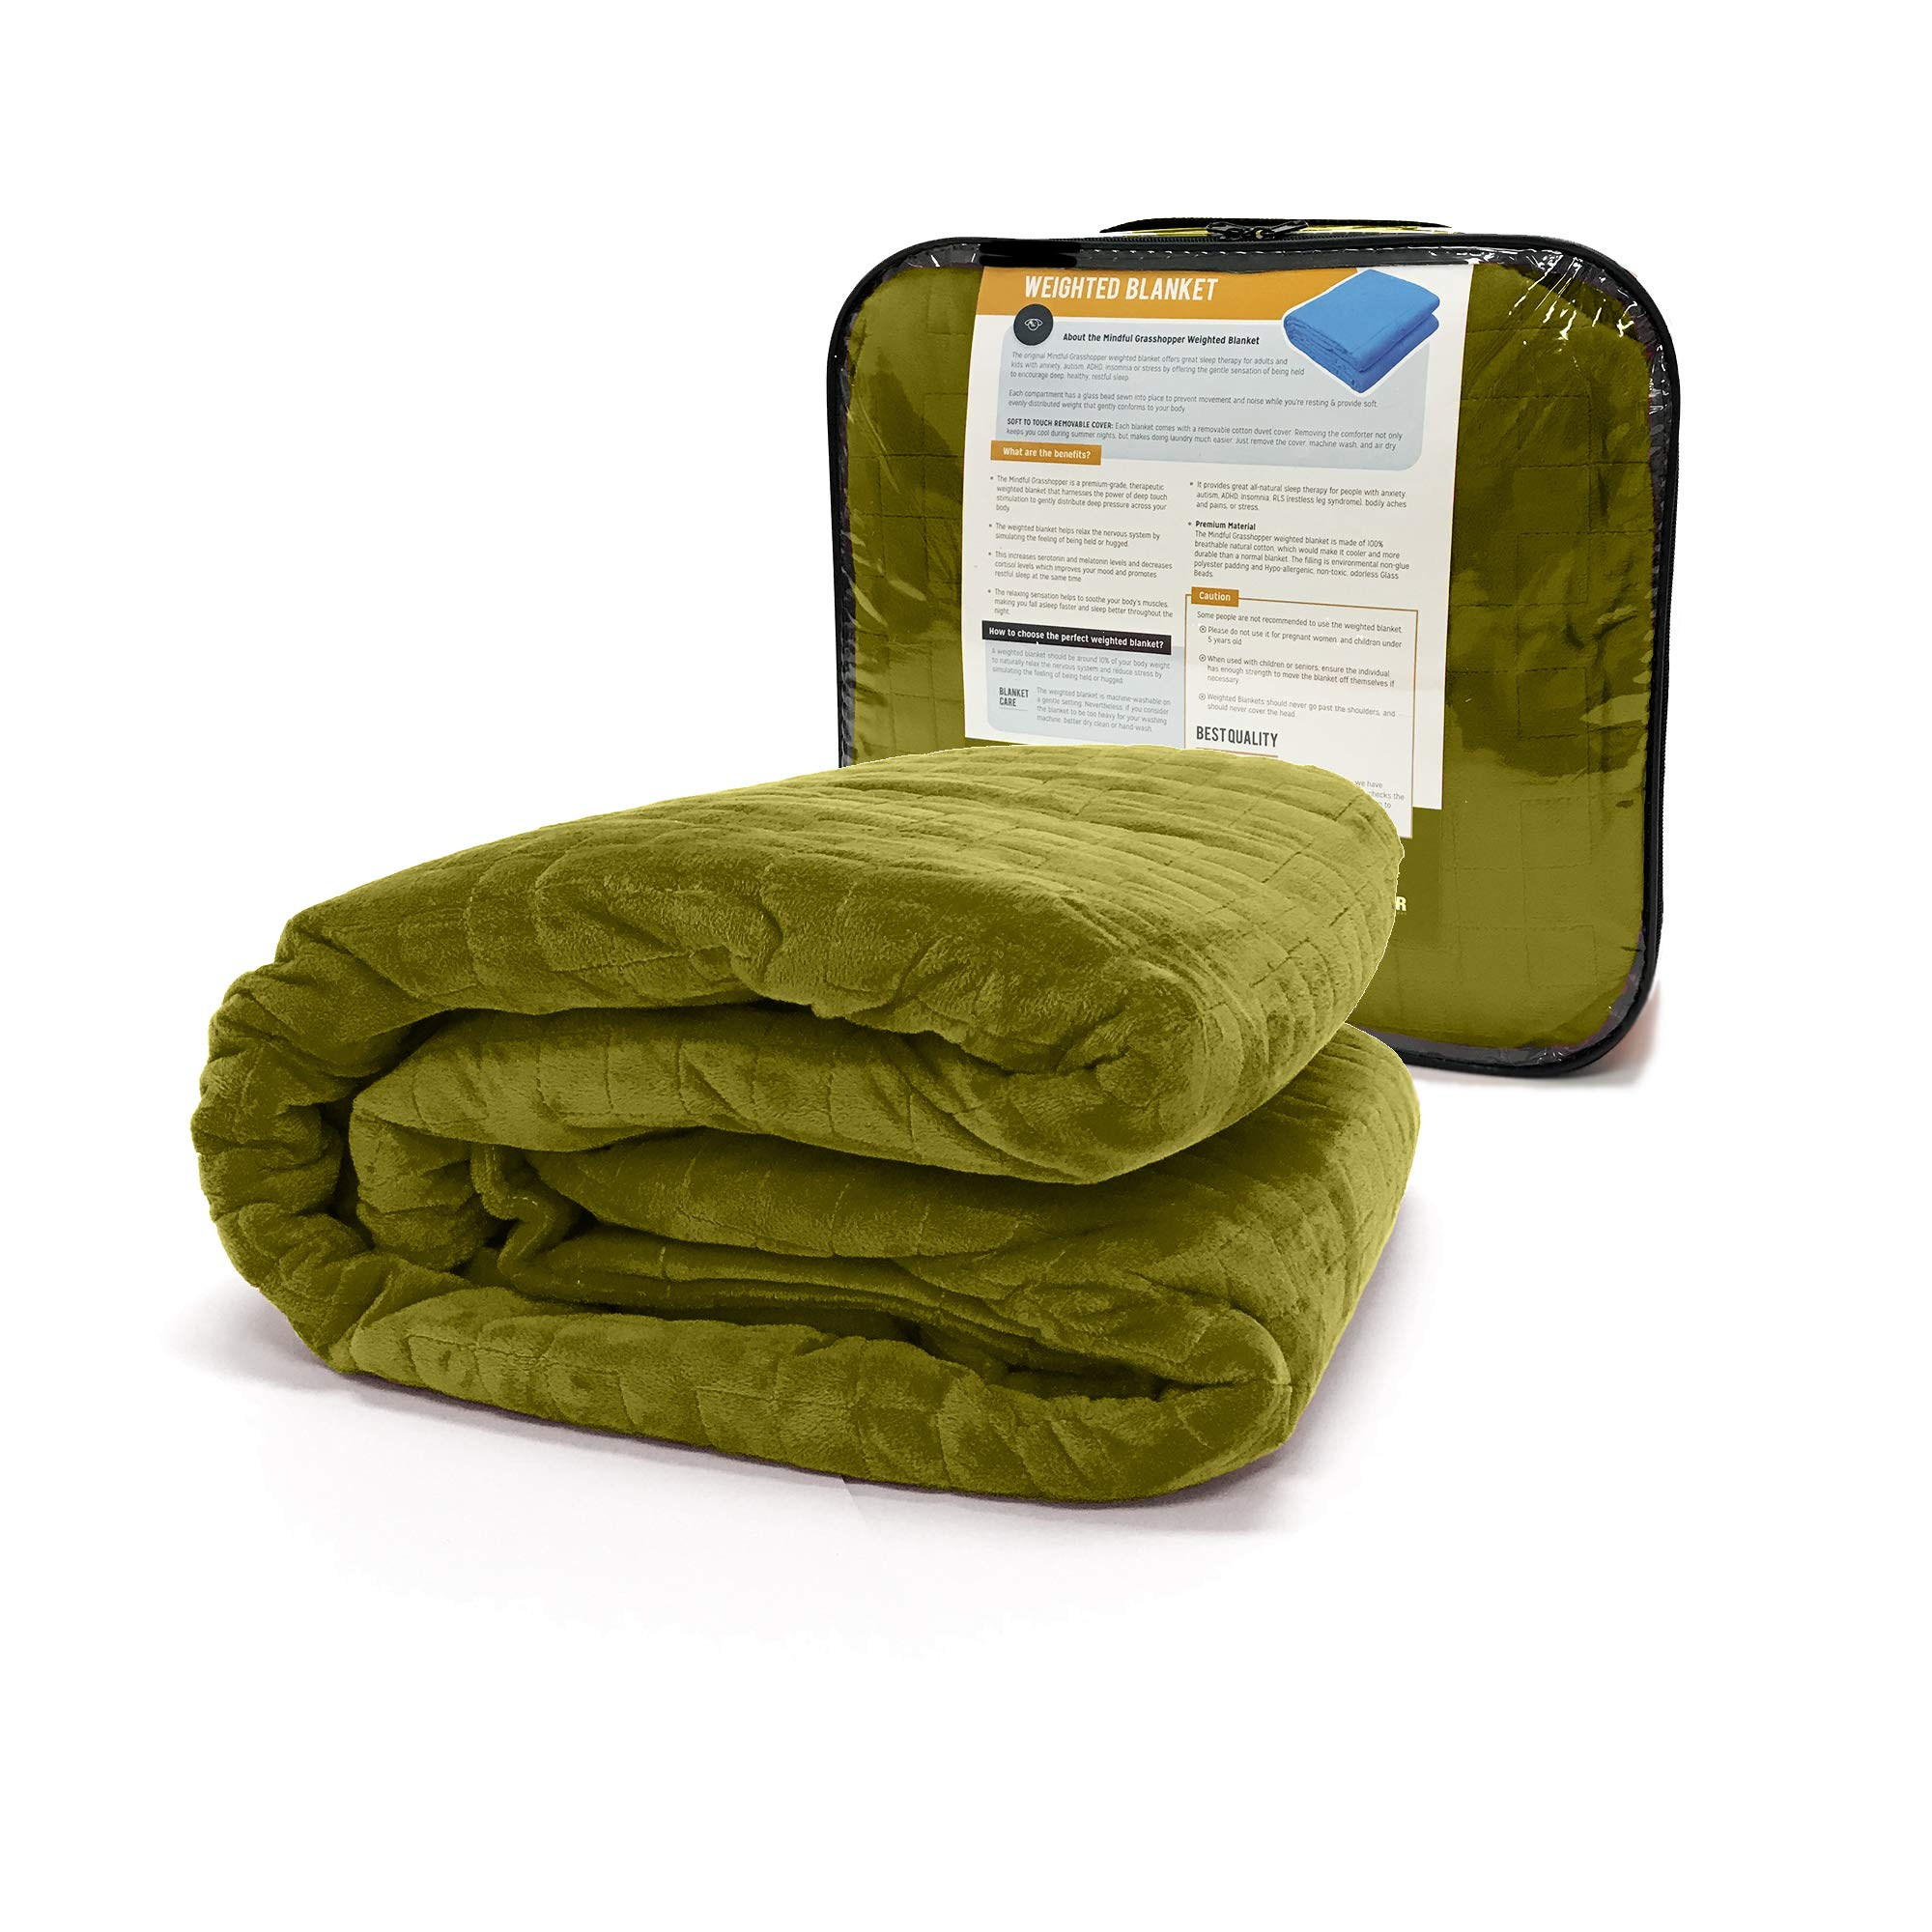 Weighted Blanket for Kids 5 lb, Cool Heavy Blanket for Children 30-40 lbs, 2 Soft Covers Green/Yellow, Premium Cotton with Glass Beads, Perfect for Boys and Girls, Sensory Blankets, Size 36x48in.